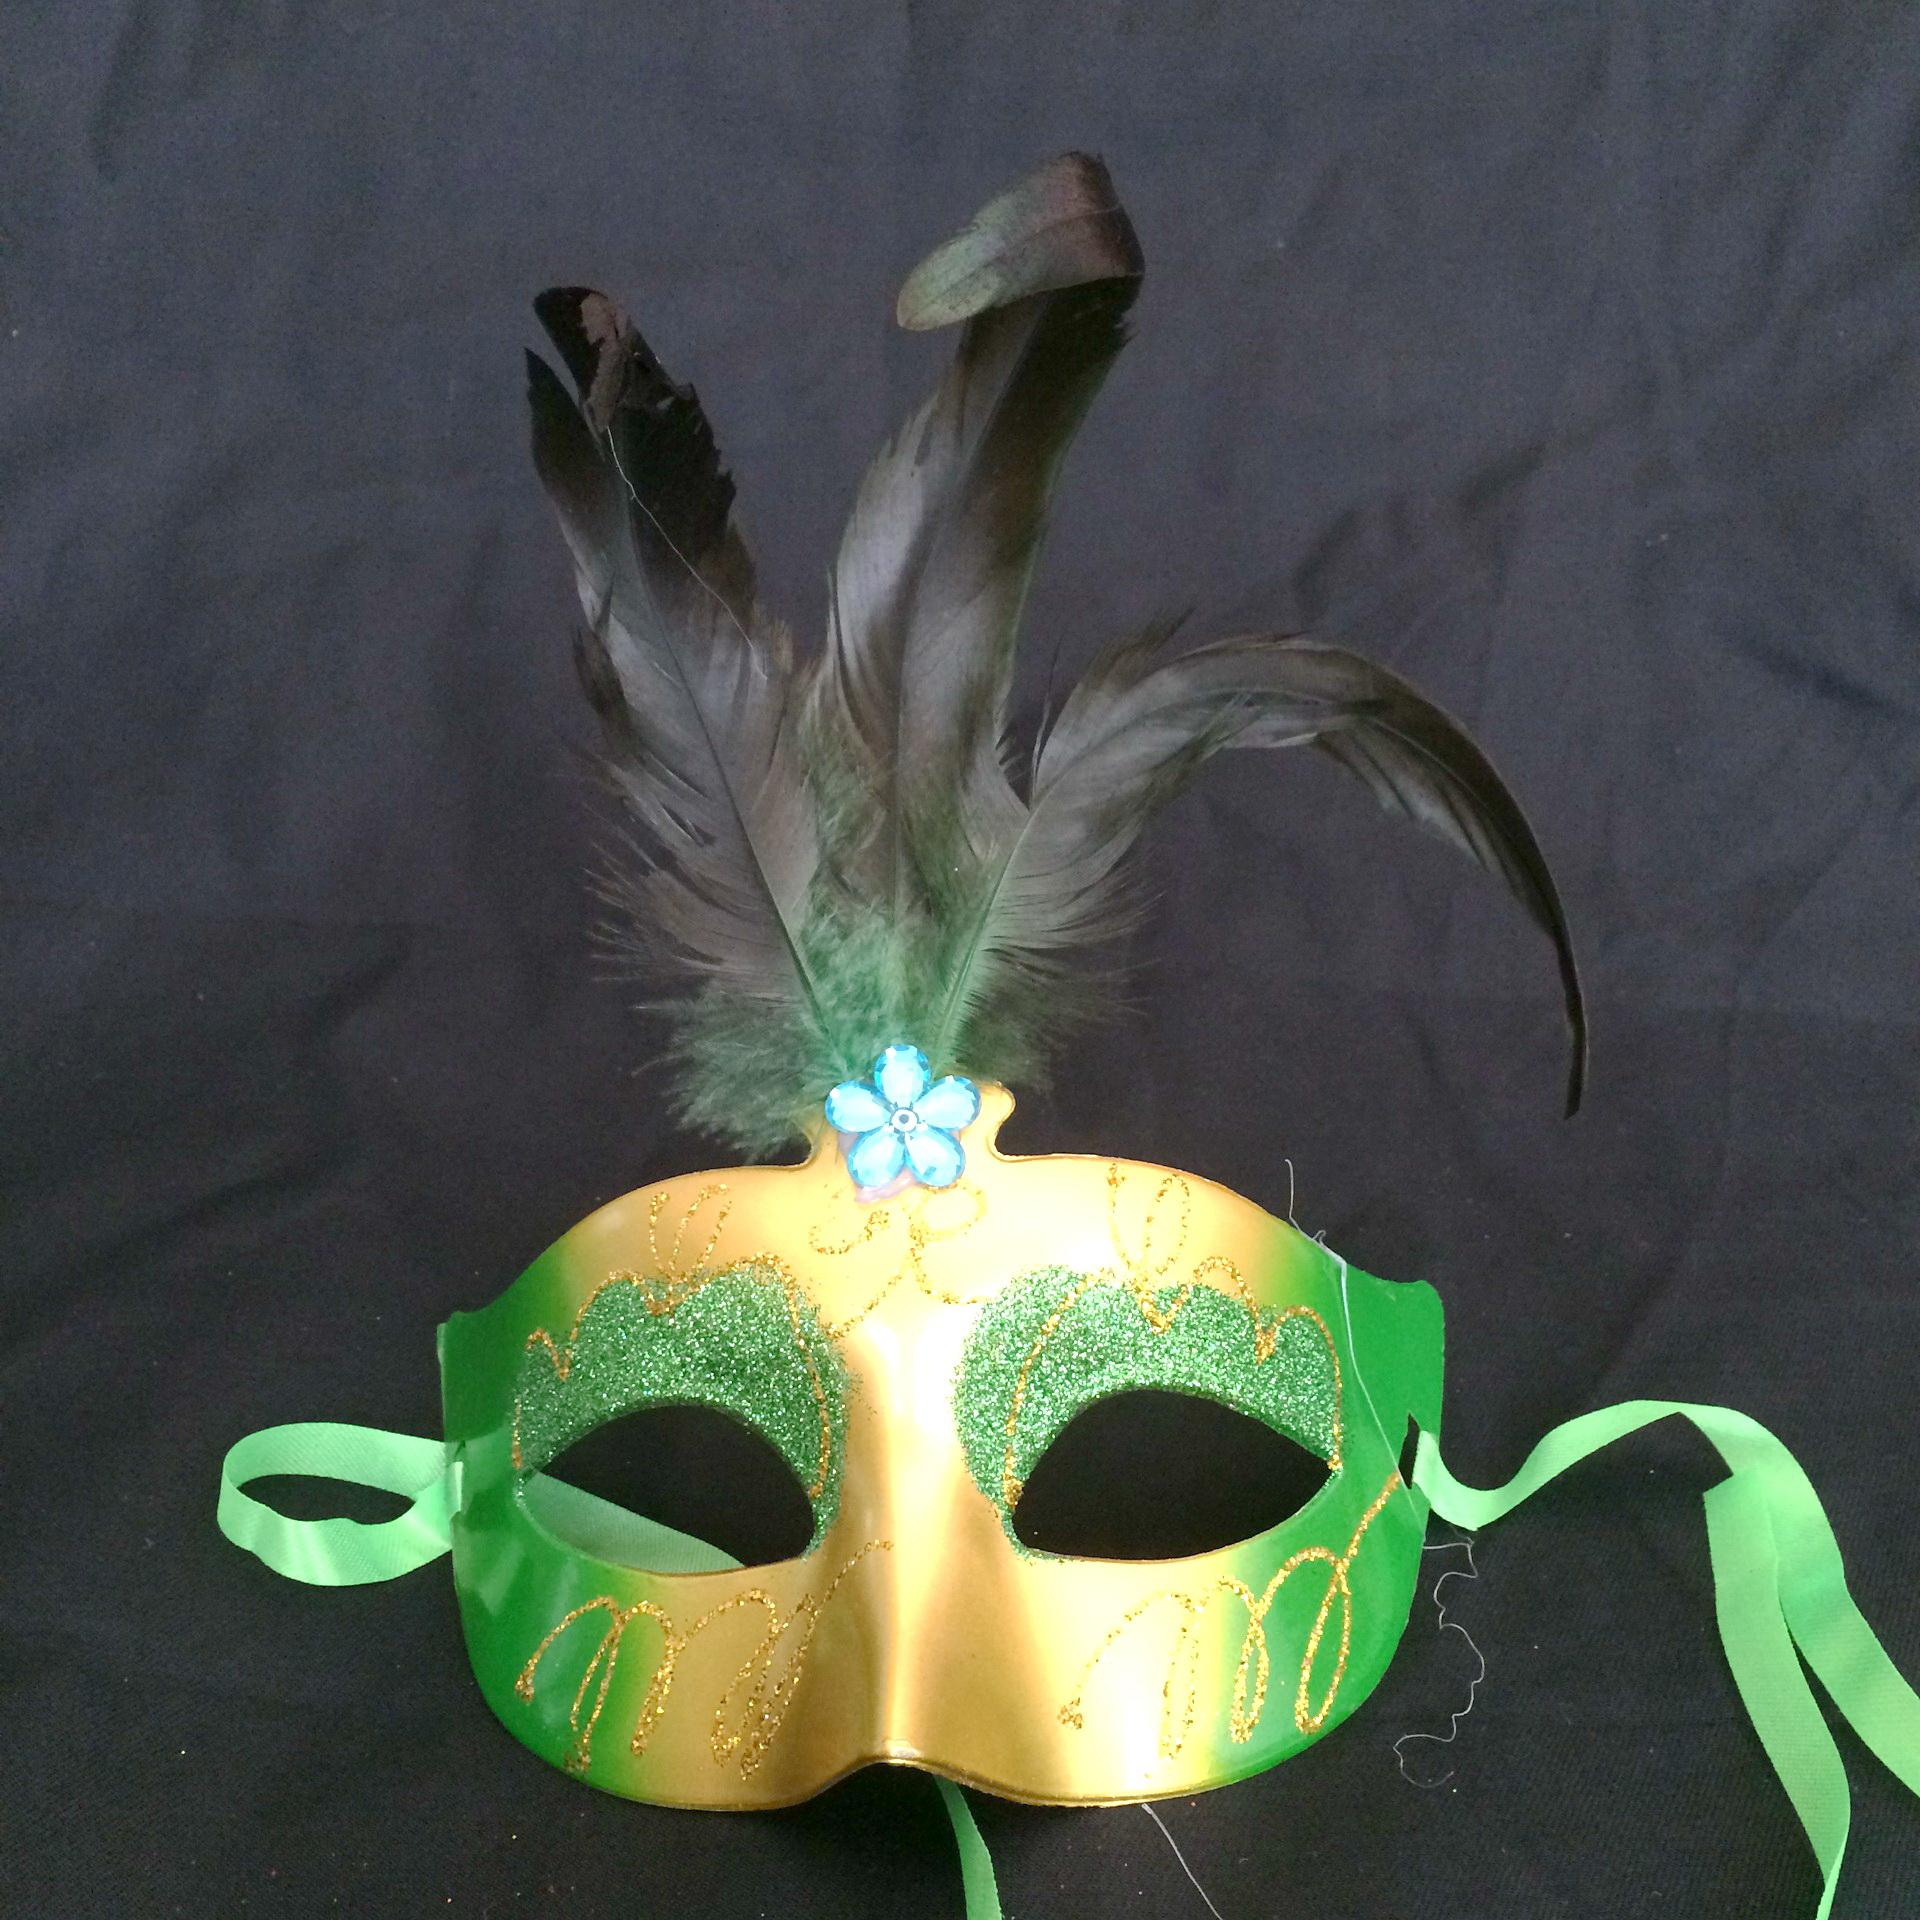 2016 new fashion Feather mask Women Feathered Venetian Masquerade Masks for a masked ball Painting crystal Masks mix colors 100pcs